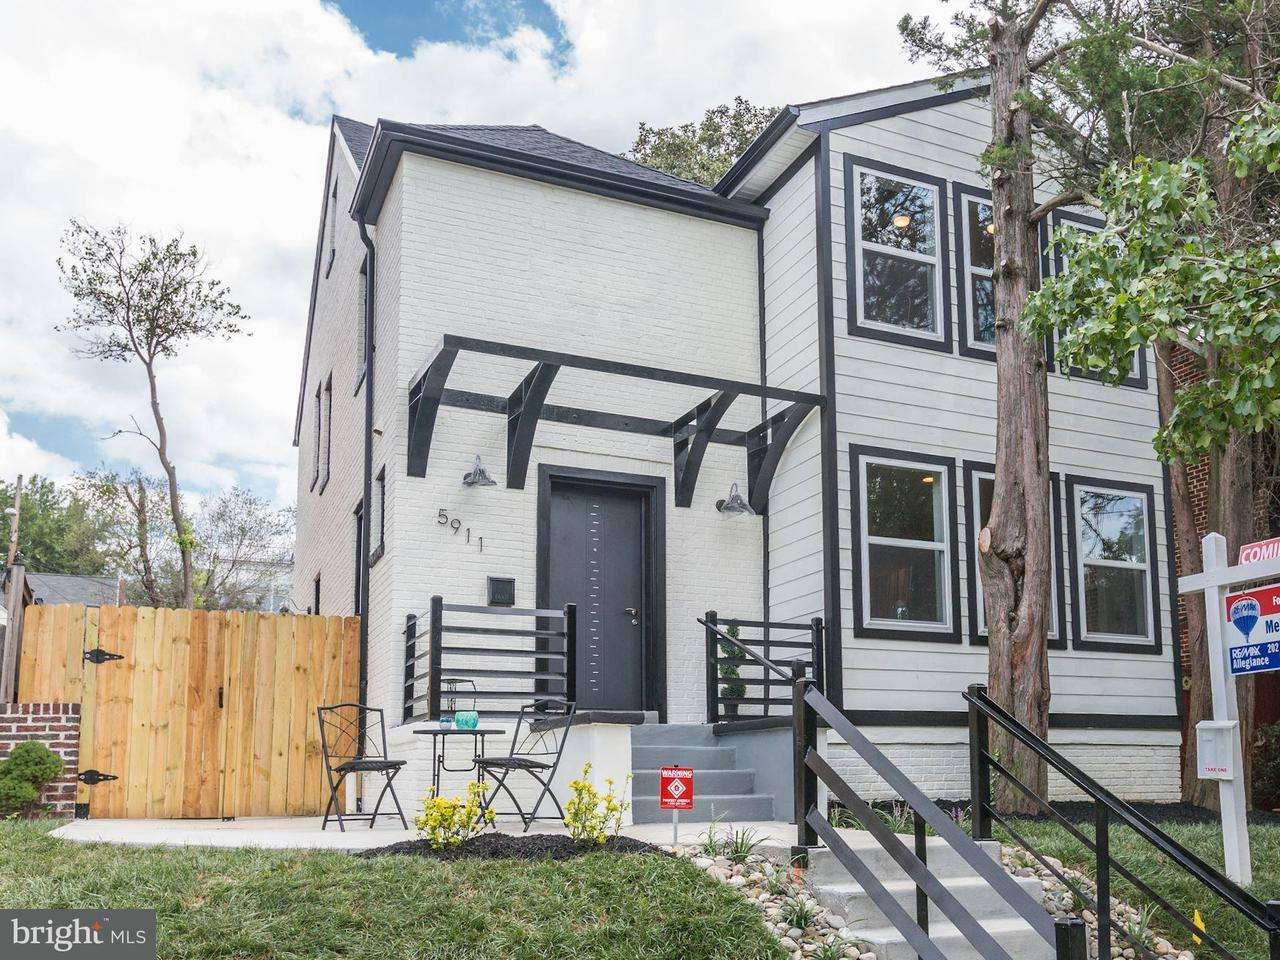 Single Family Home for Sale at 5911 2nd Pl Nw 5911 2nd Pl Nw Washington, District Of Columbia 20011 United States